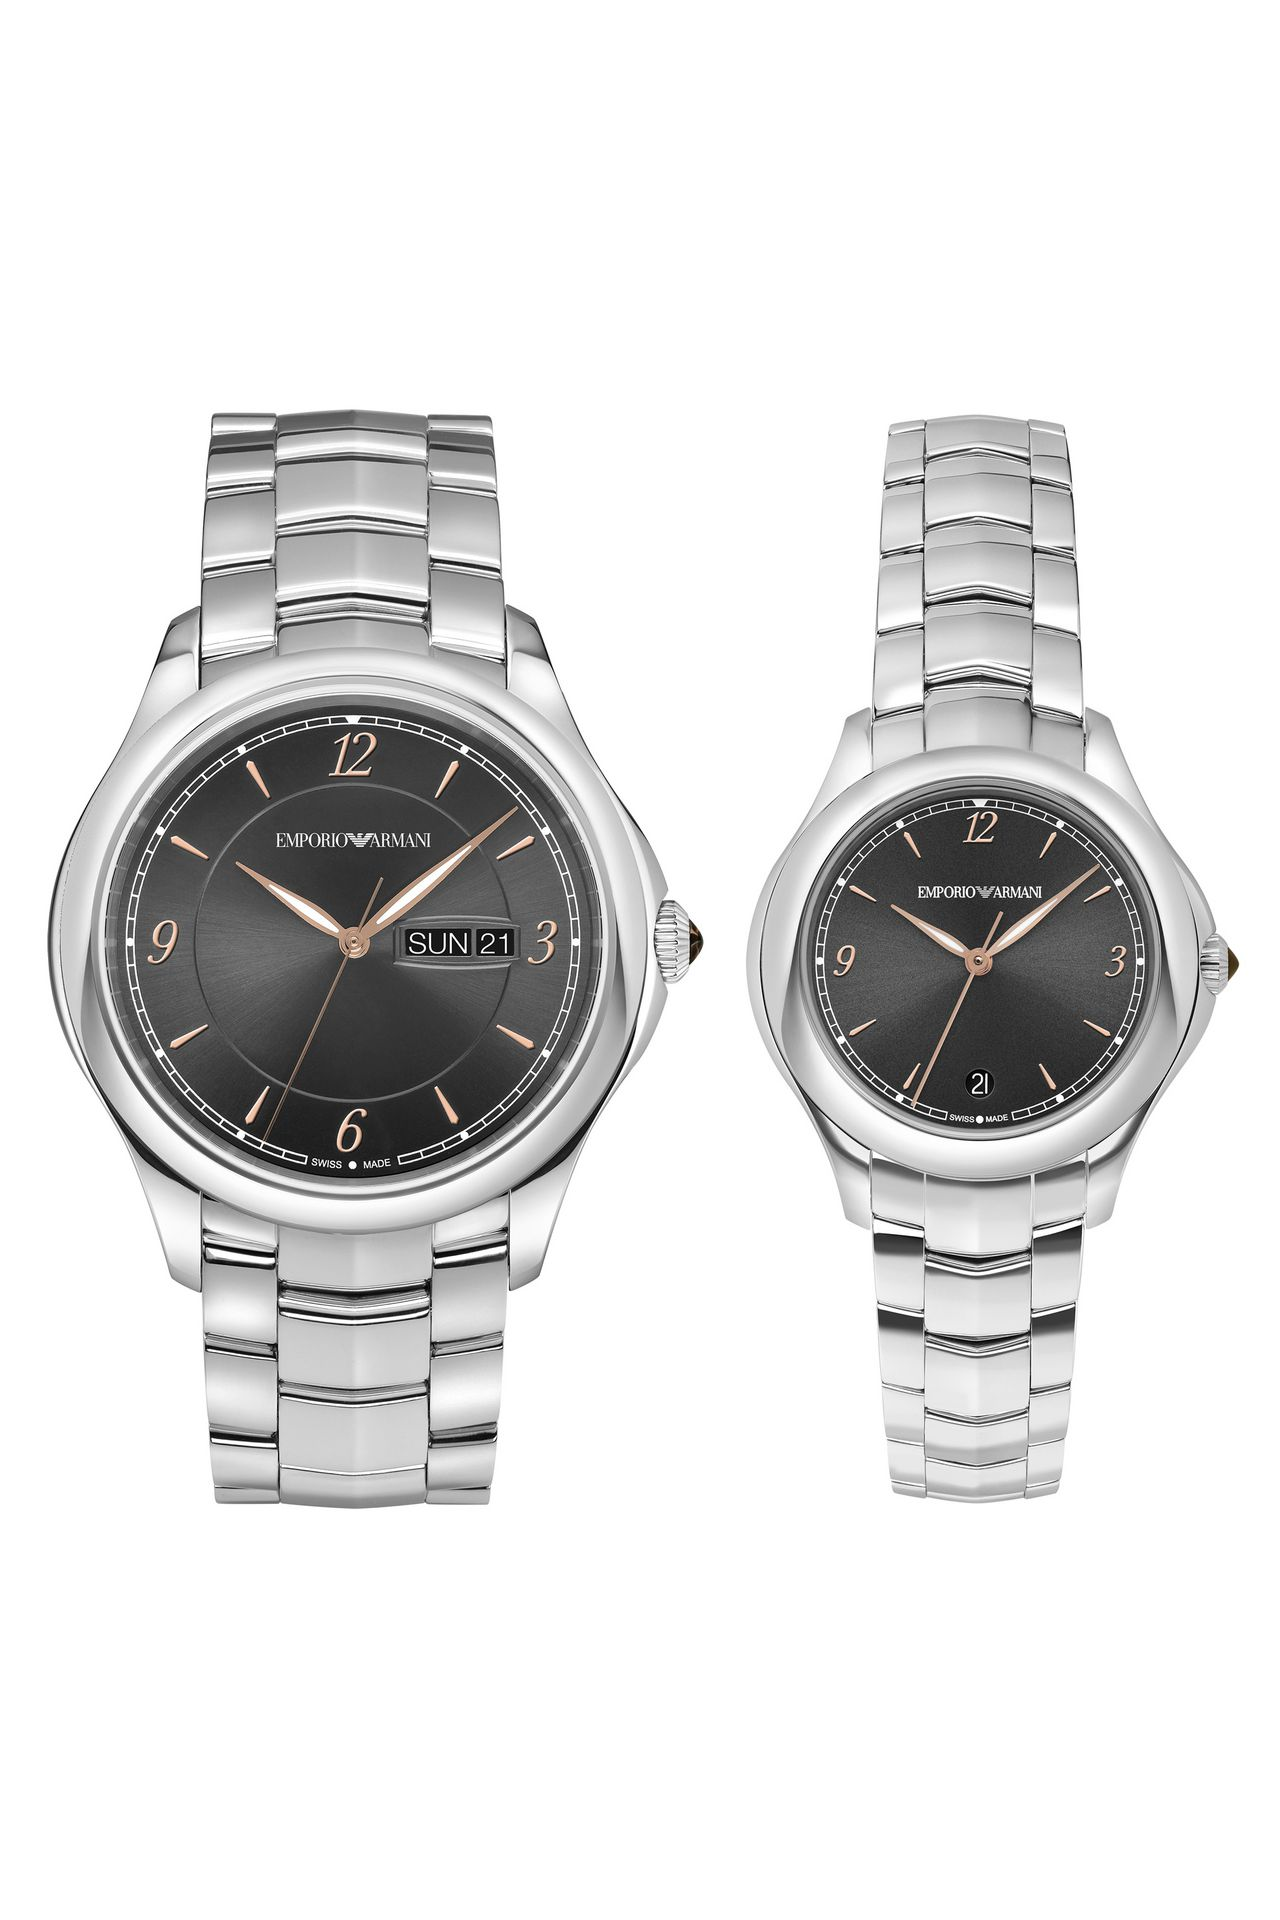 Matching Watches For Him And Her - Most Popular Watches 2017